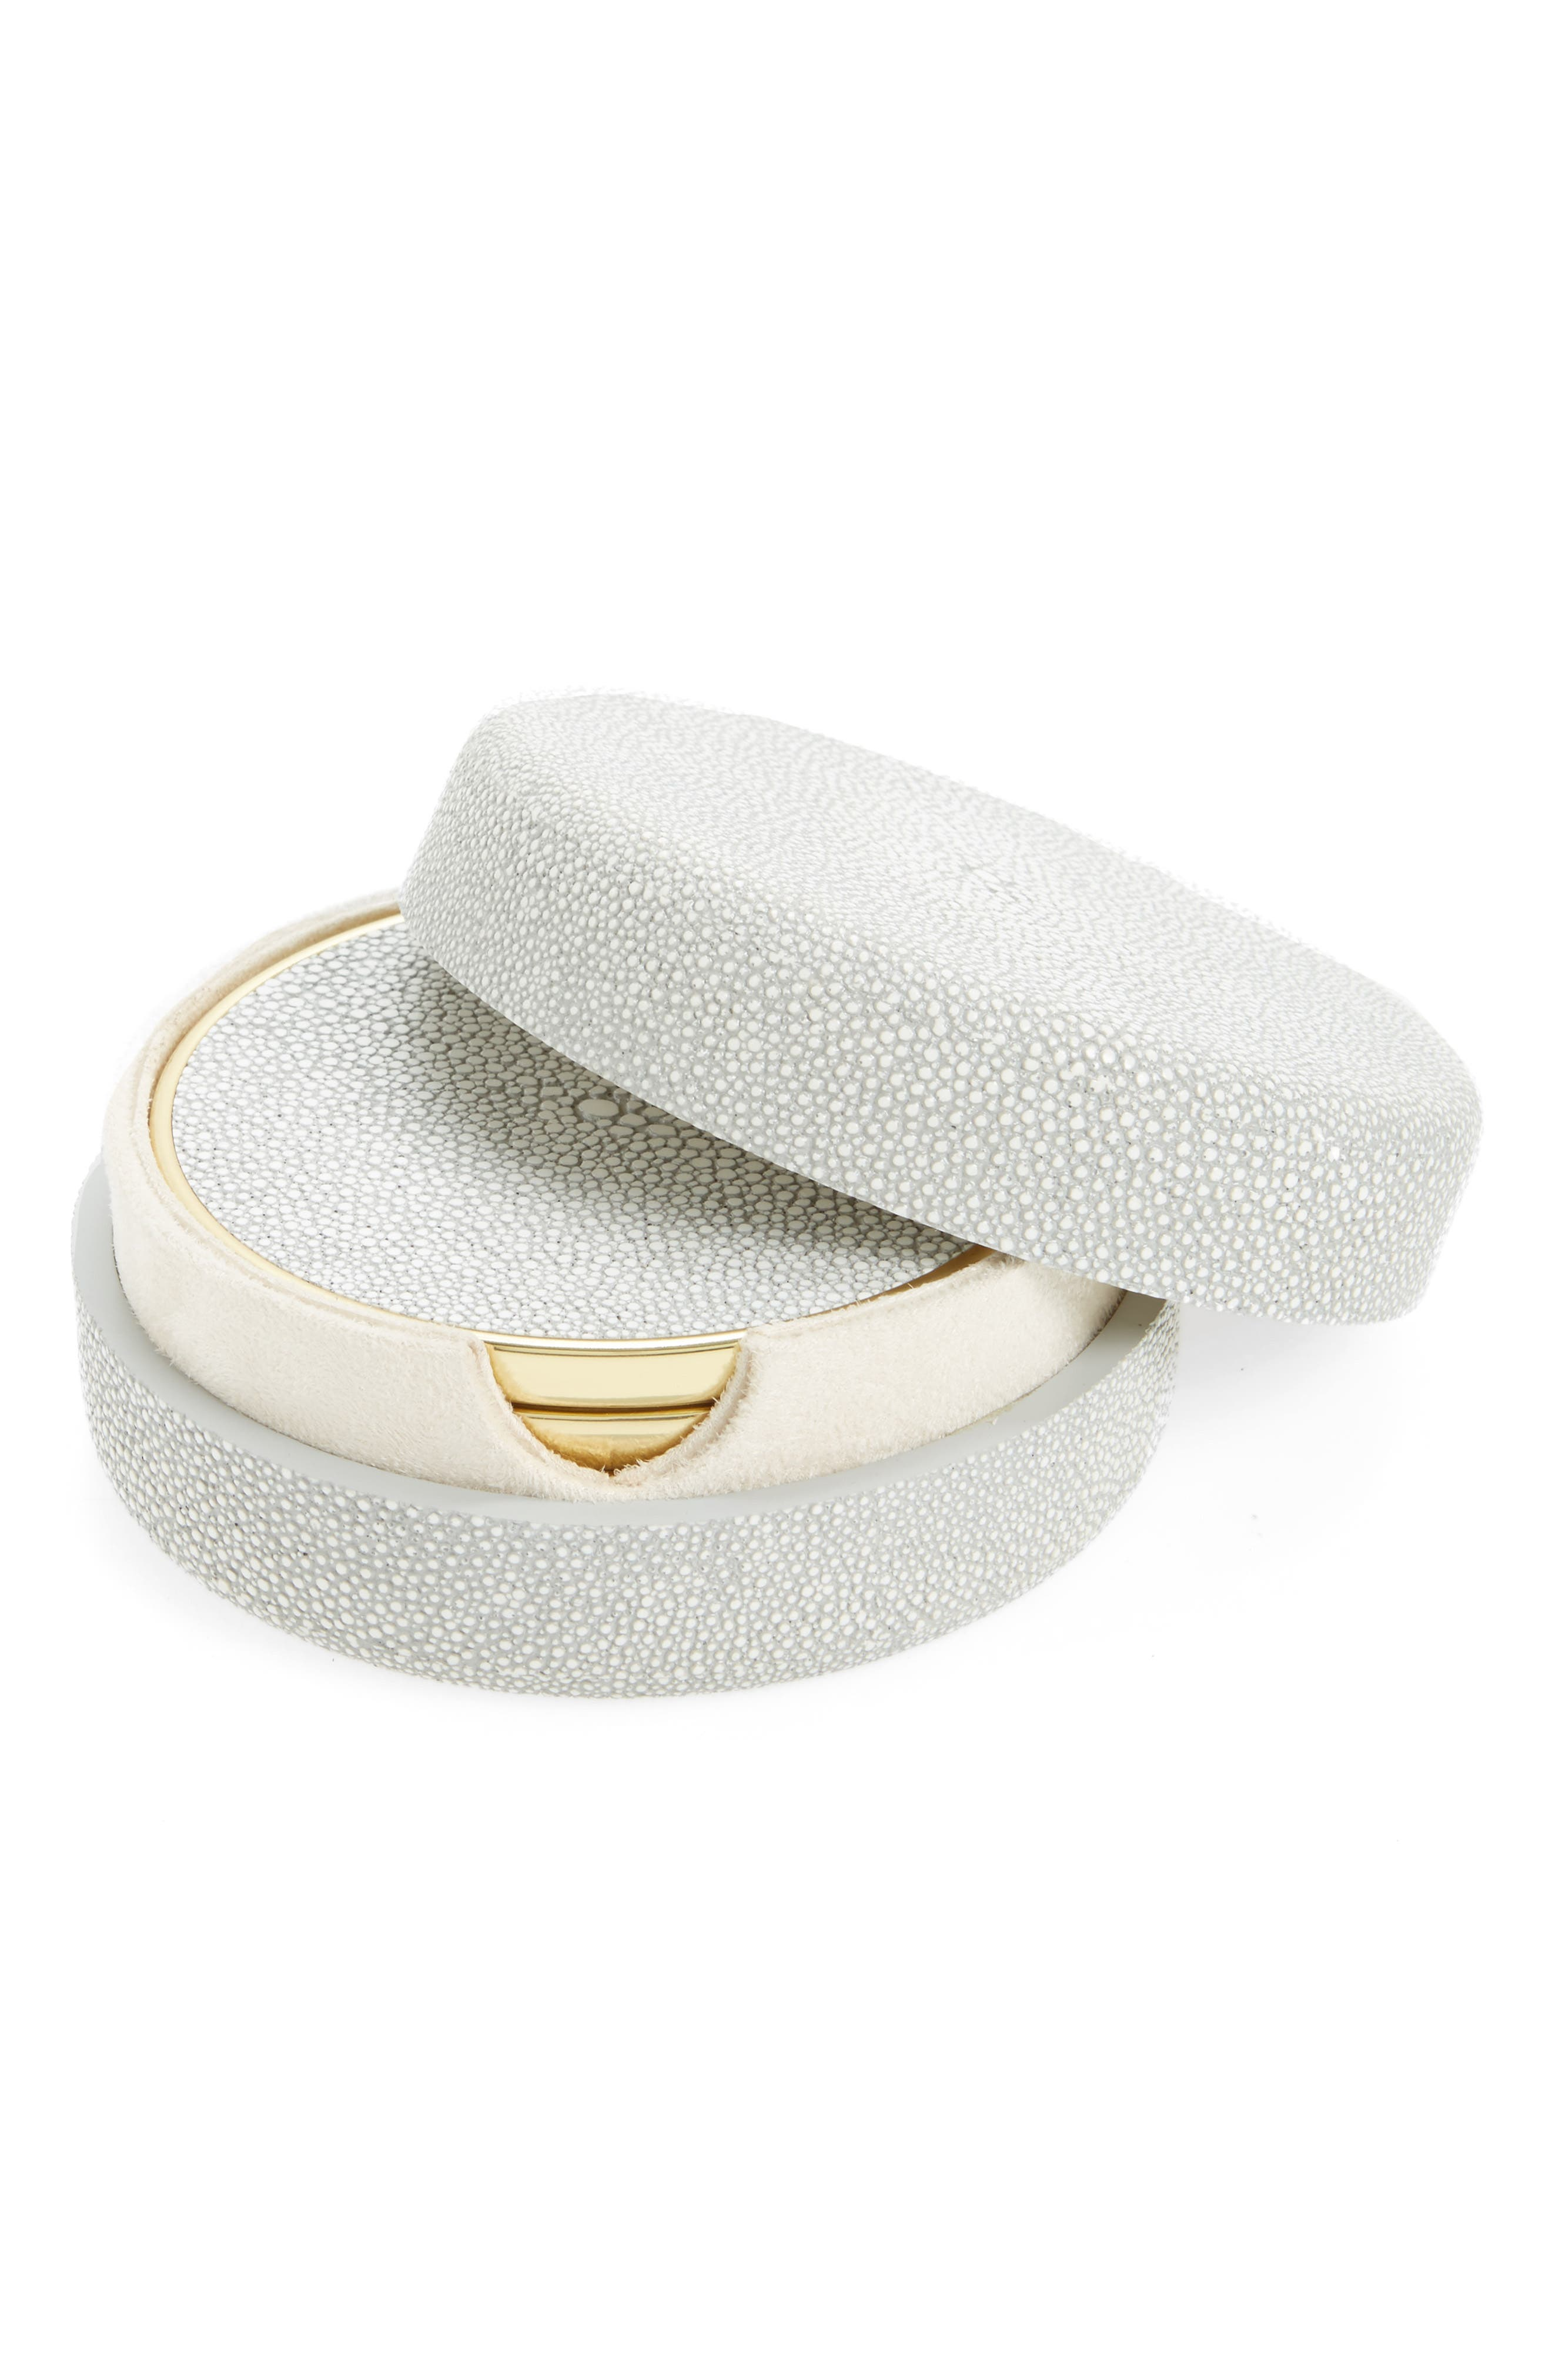 Shagreen Set of 4 Coasters with Lidded Holder,                             Main thumbnail 1, color,                             020